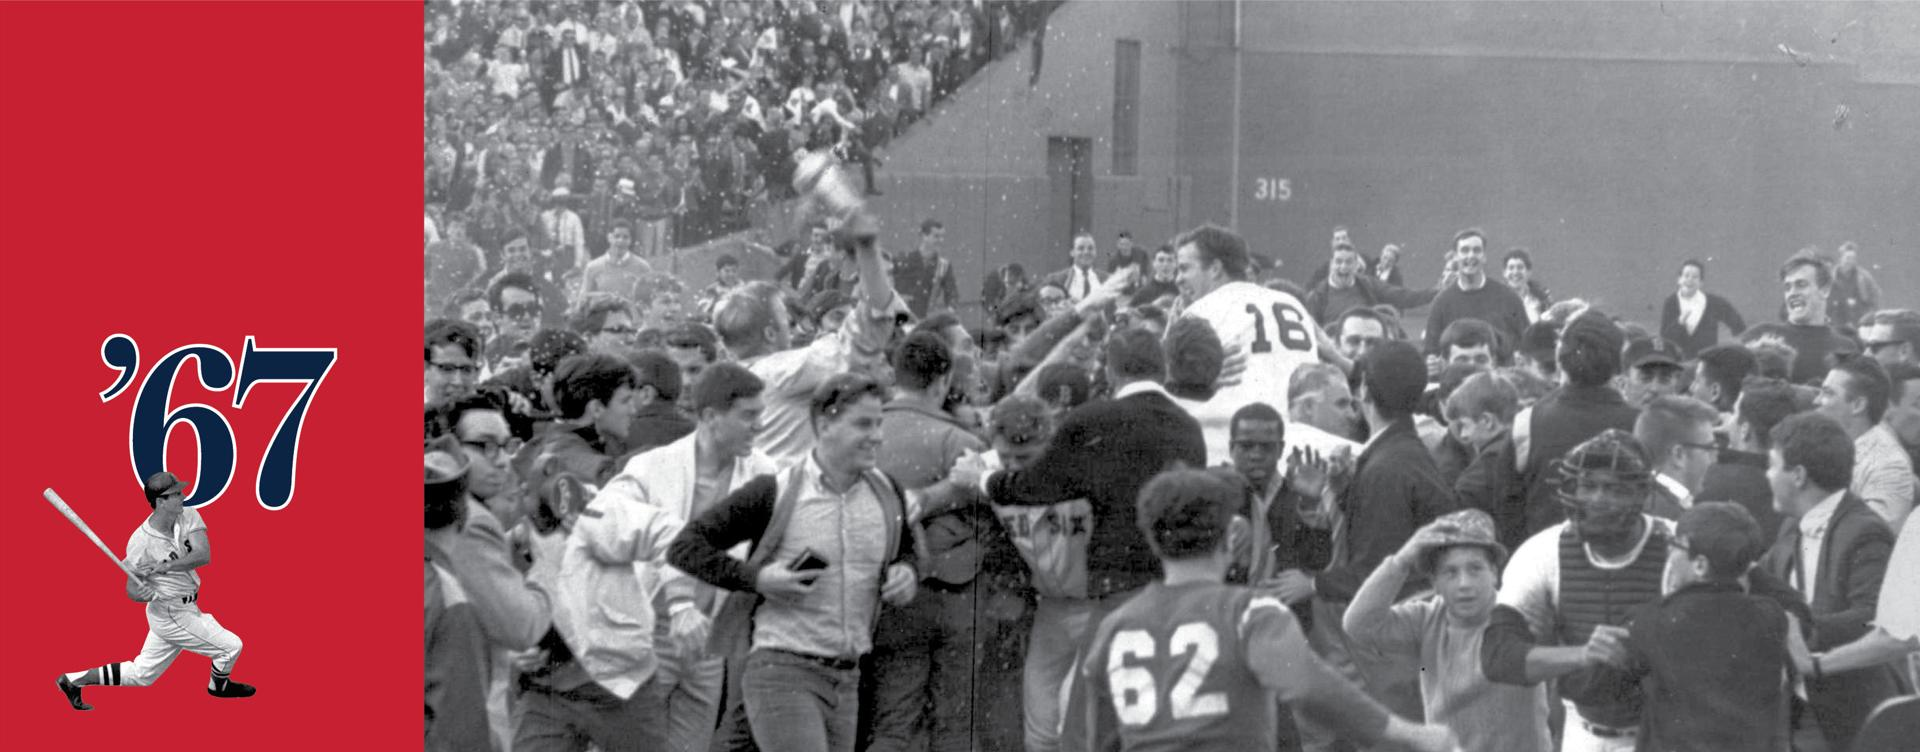 Red Sox pitcher Jim Lonborg was swept away by excited fans after Boston defeated the Minnesota Twins to clinch at least a tie for the American League pennant.